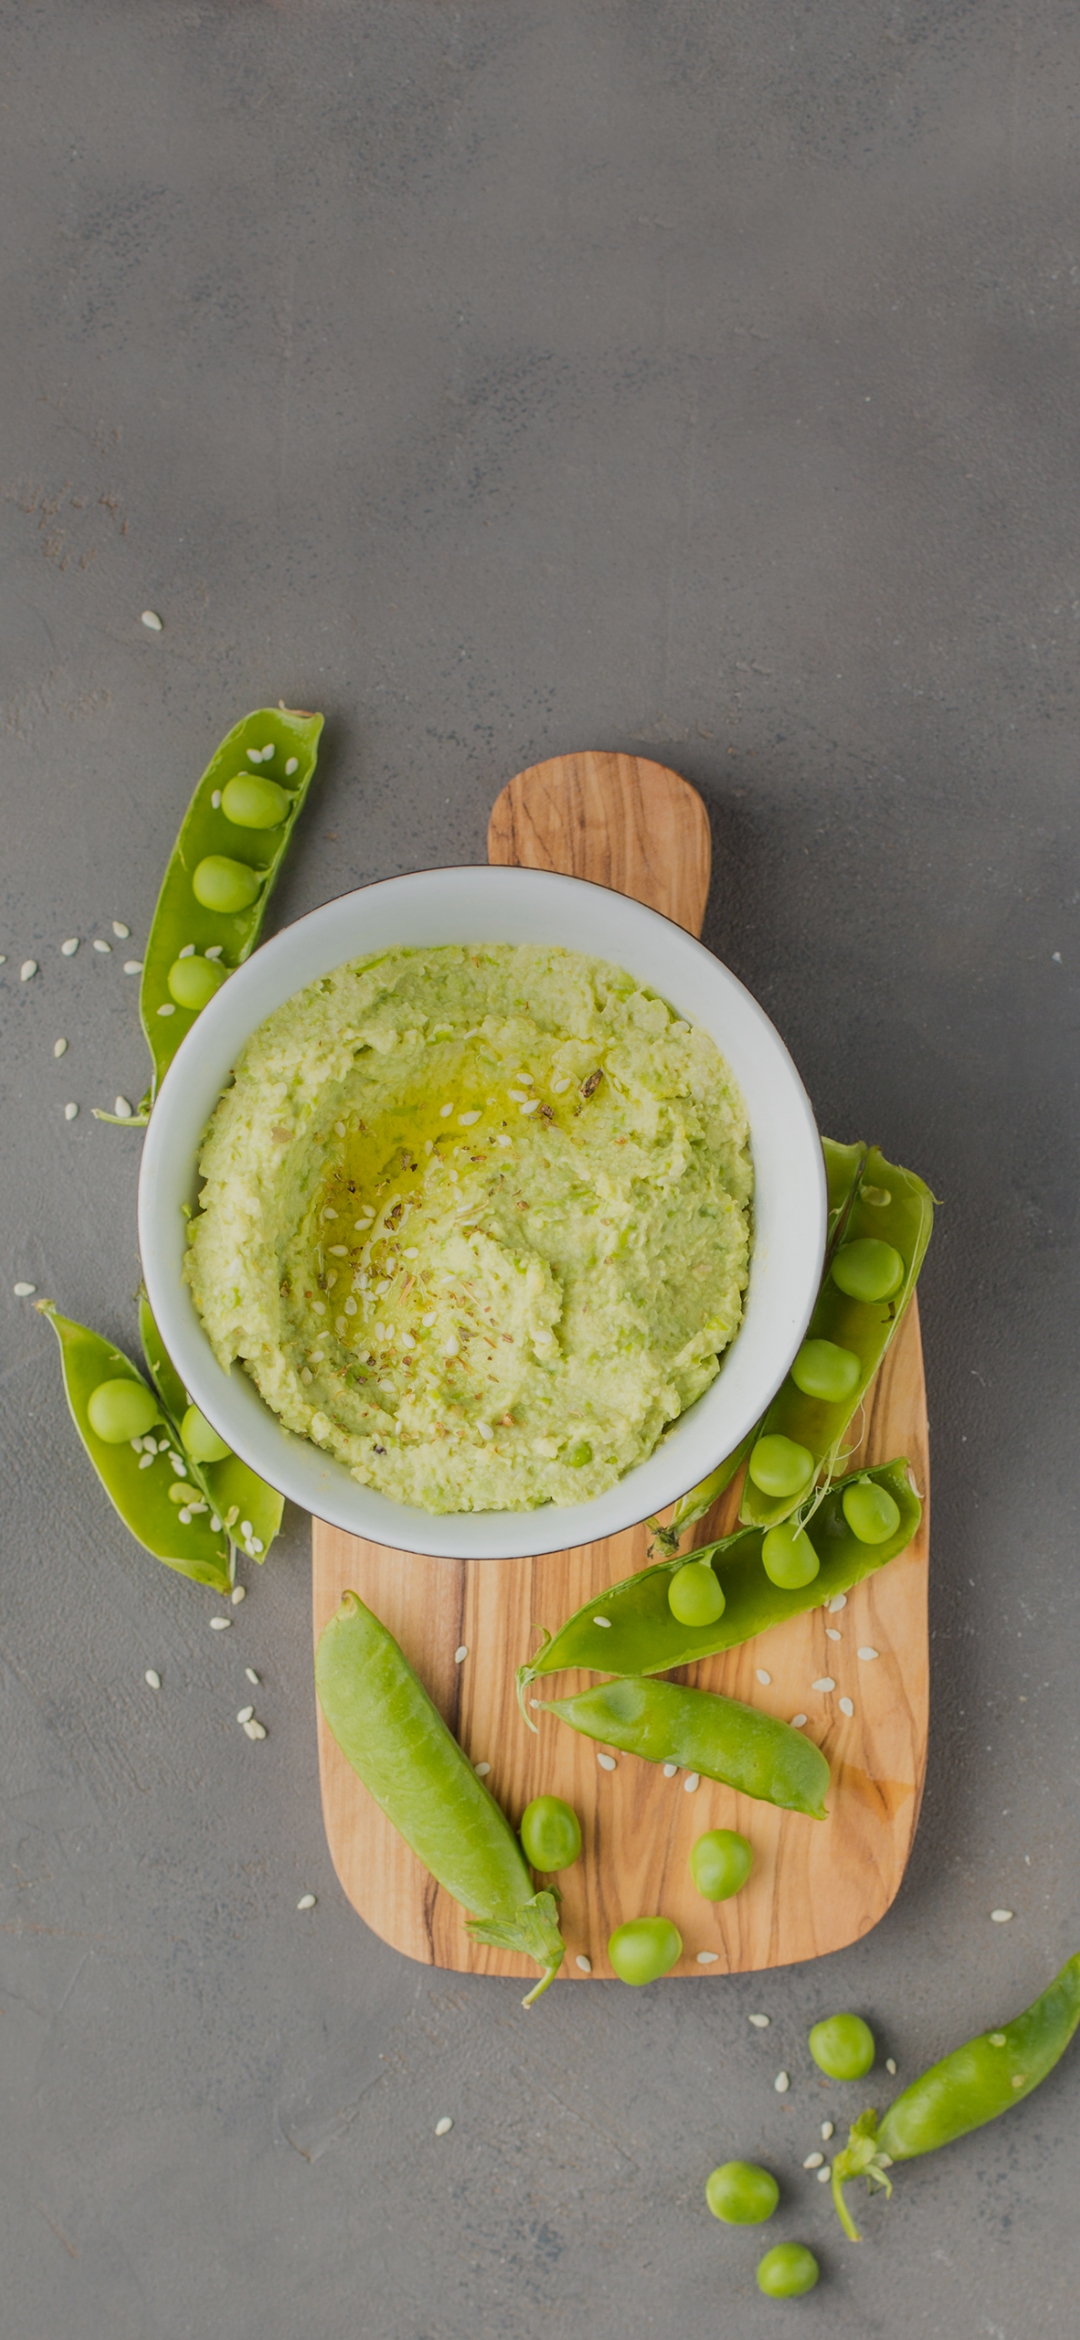 Peas and a paste in bowl